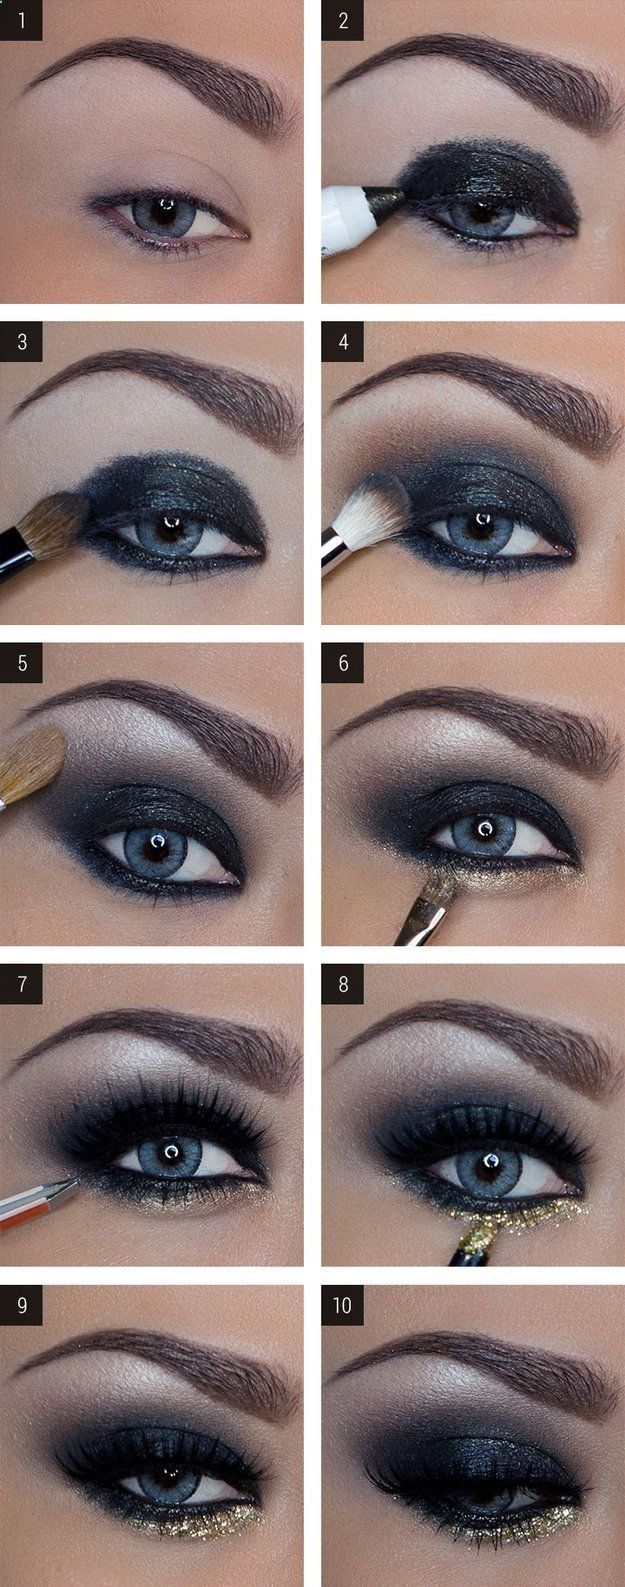 How to Do Dramatic Smokey Eyes | Makeup for Blue Eye by Makeup Tutorials at www.makeuptutoria...